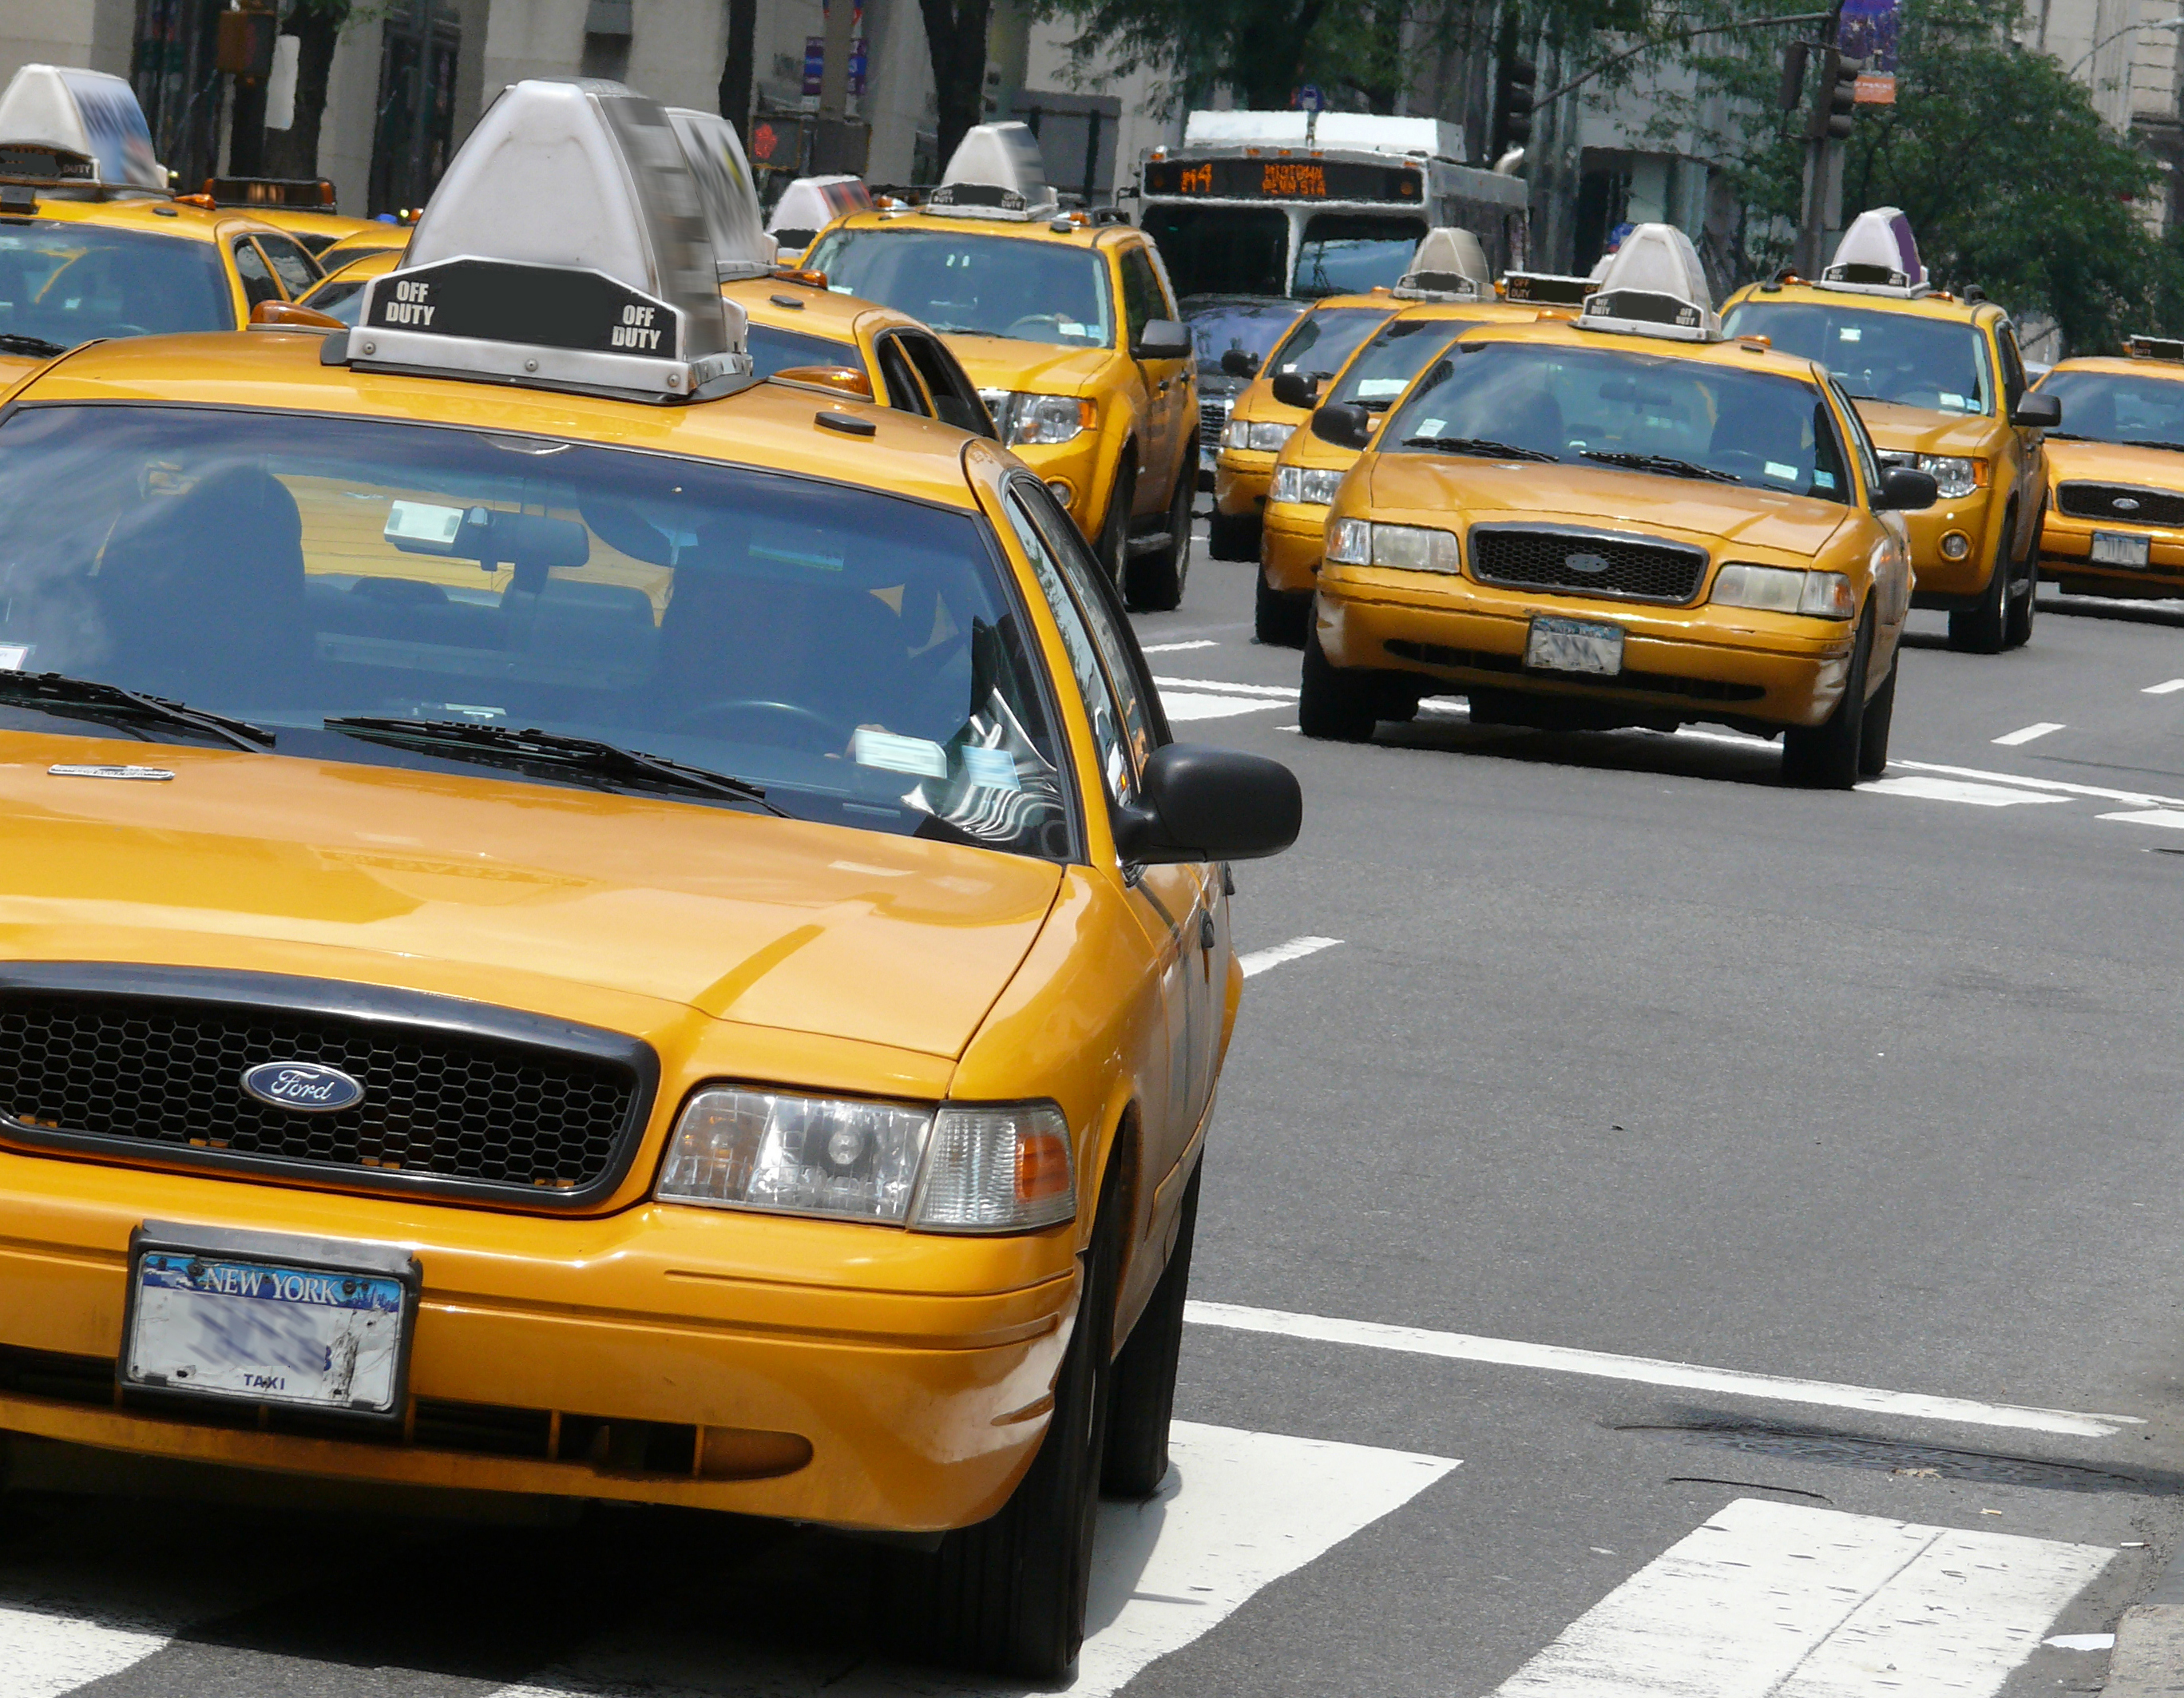 Le Cab Taxi Fichier Yellow Cabs 2 Jpg Wikipédia